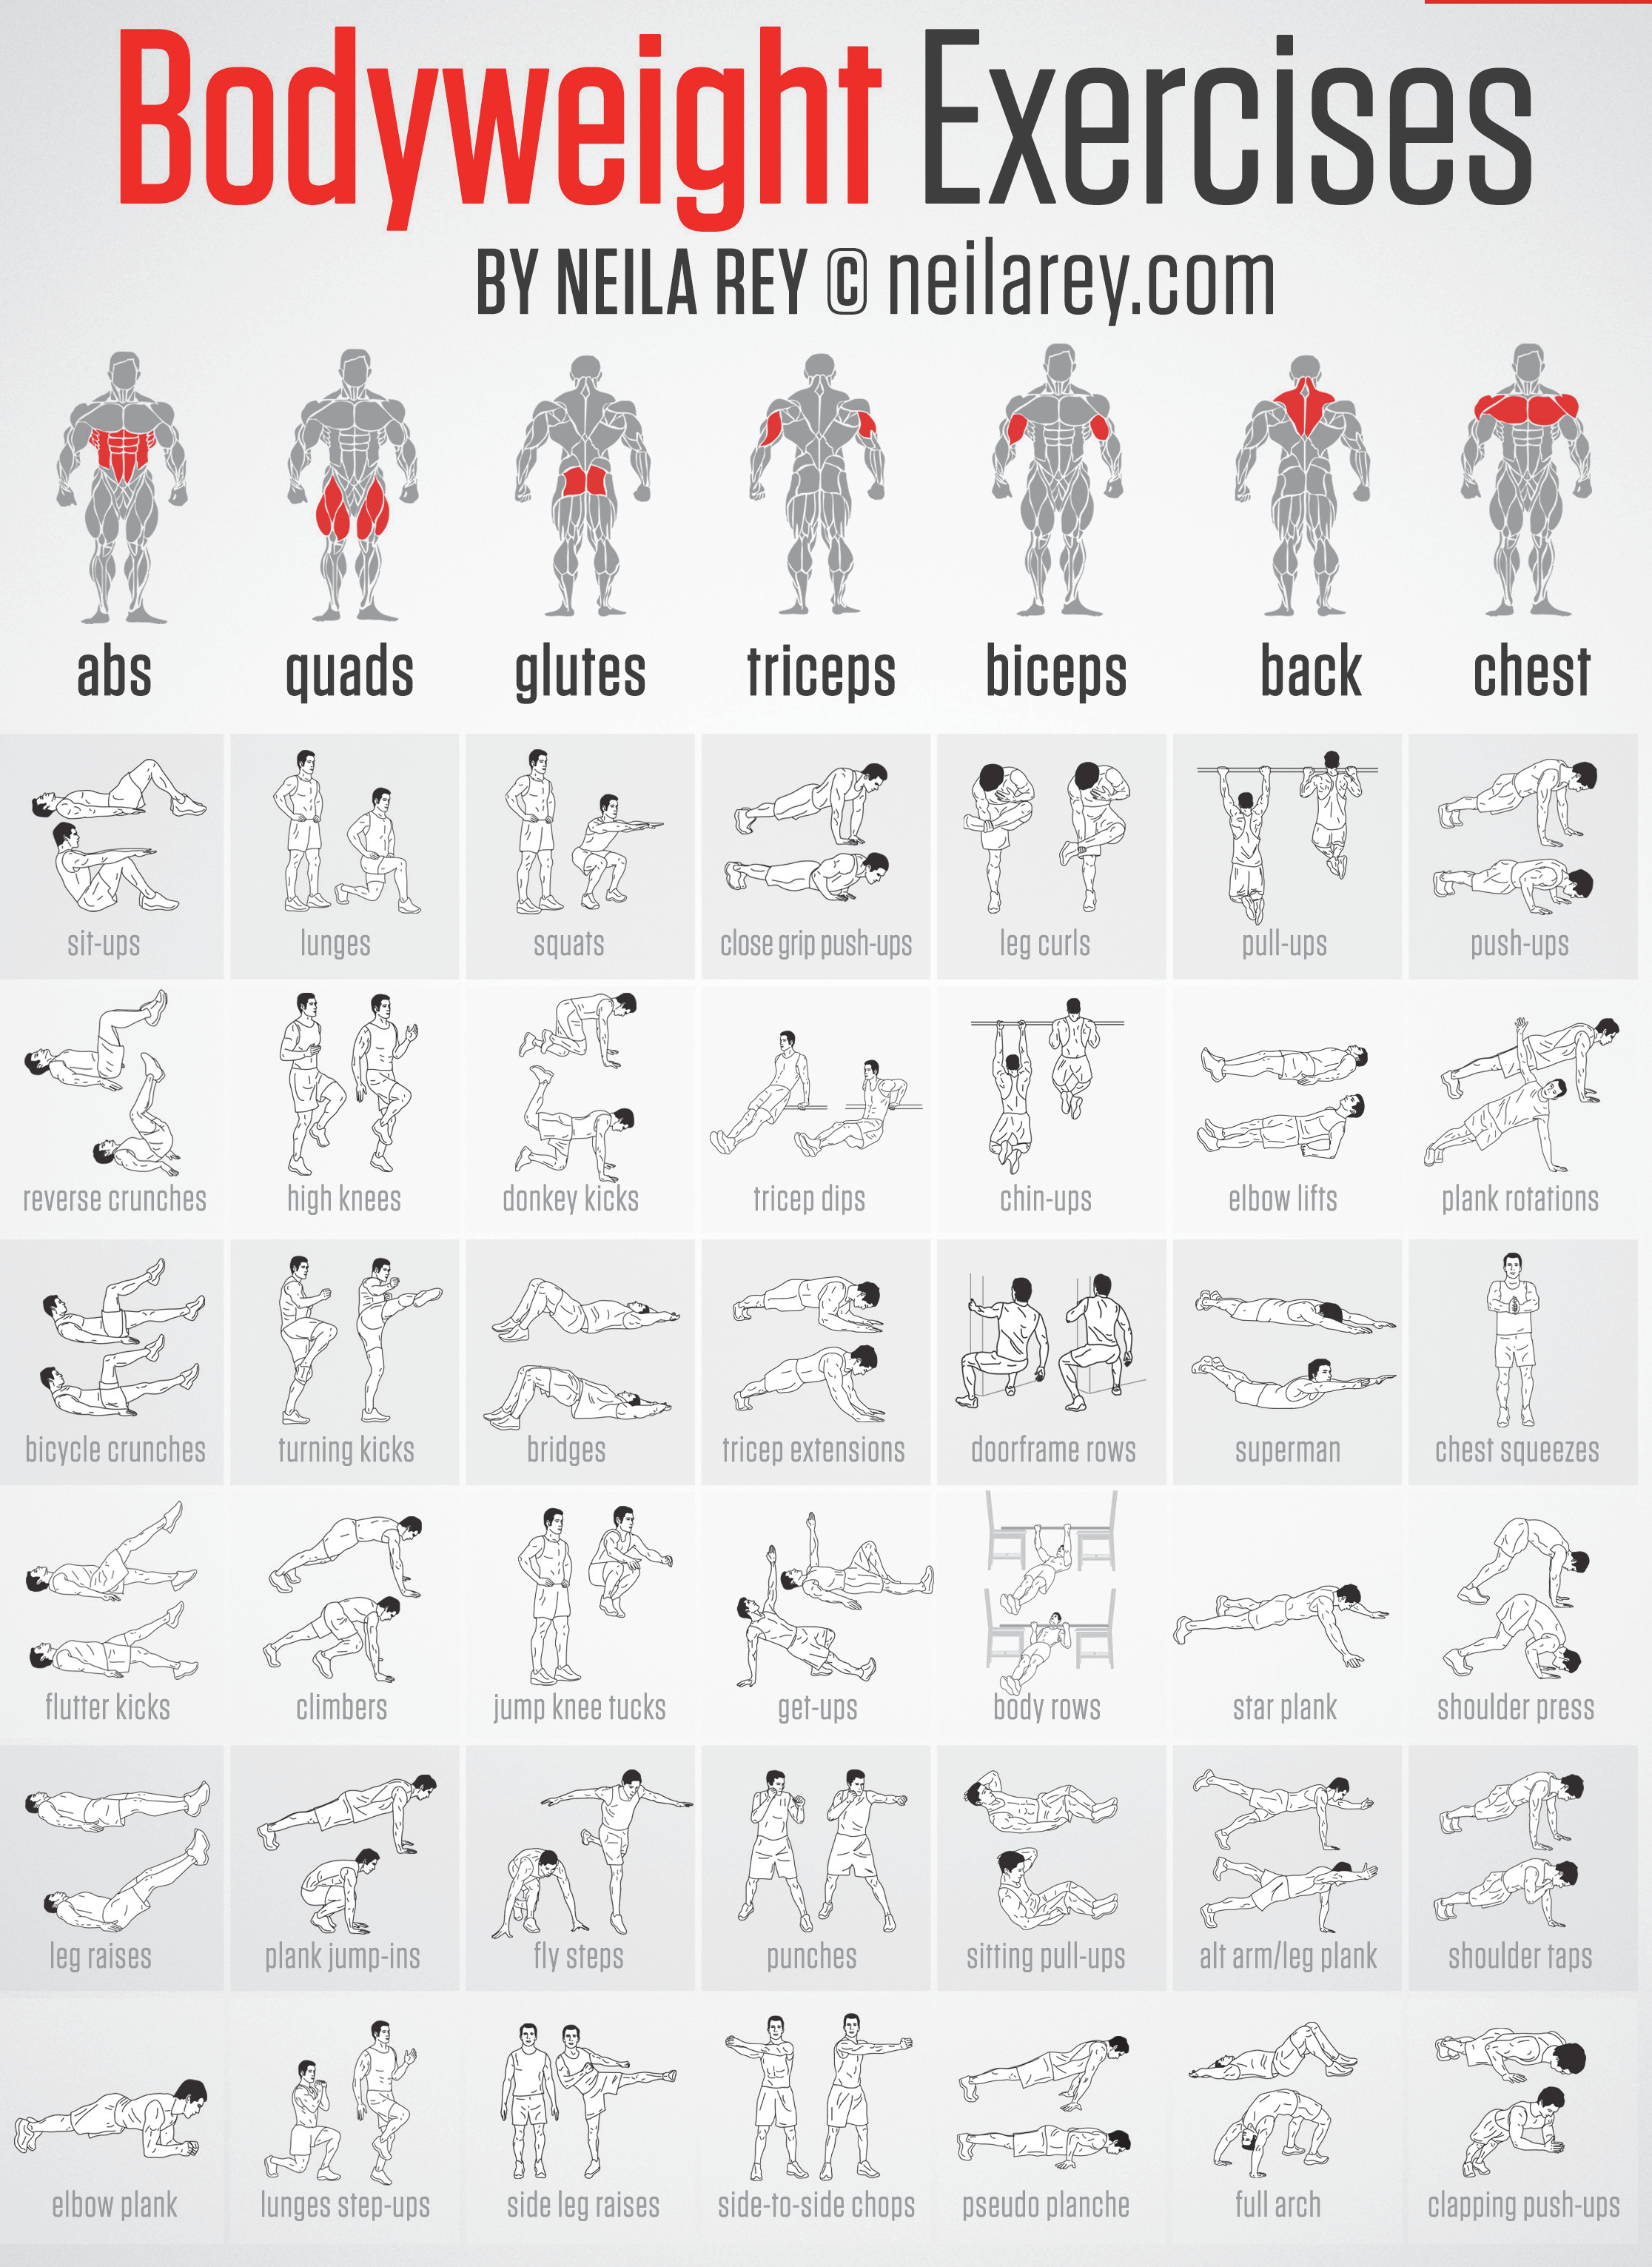 Gym Workout Chart For Chest For Men Pin By Zachariah Wallace On Fitness Pinterest Gym